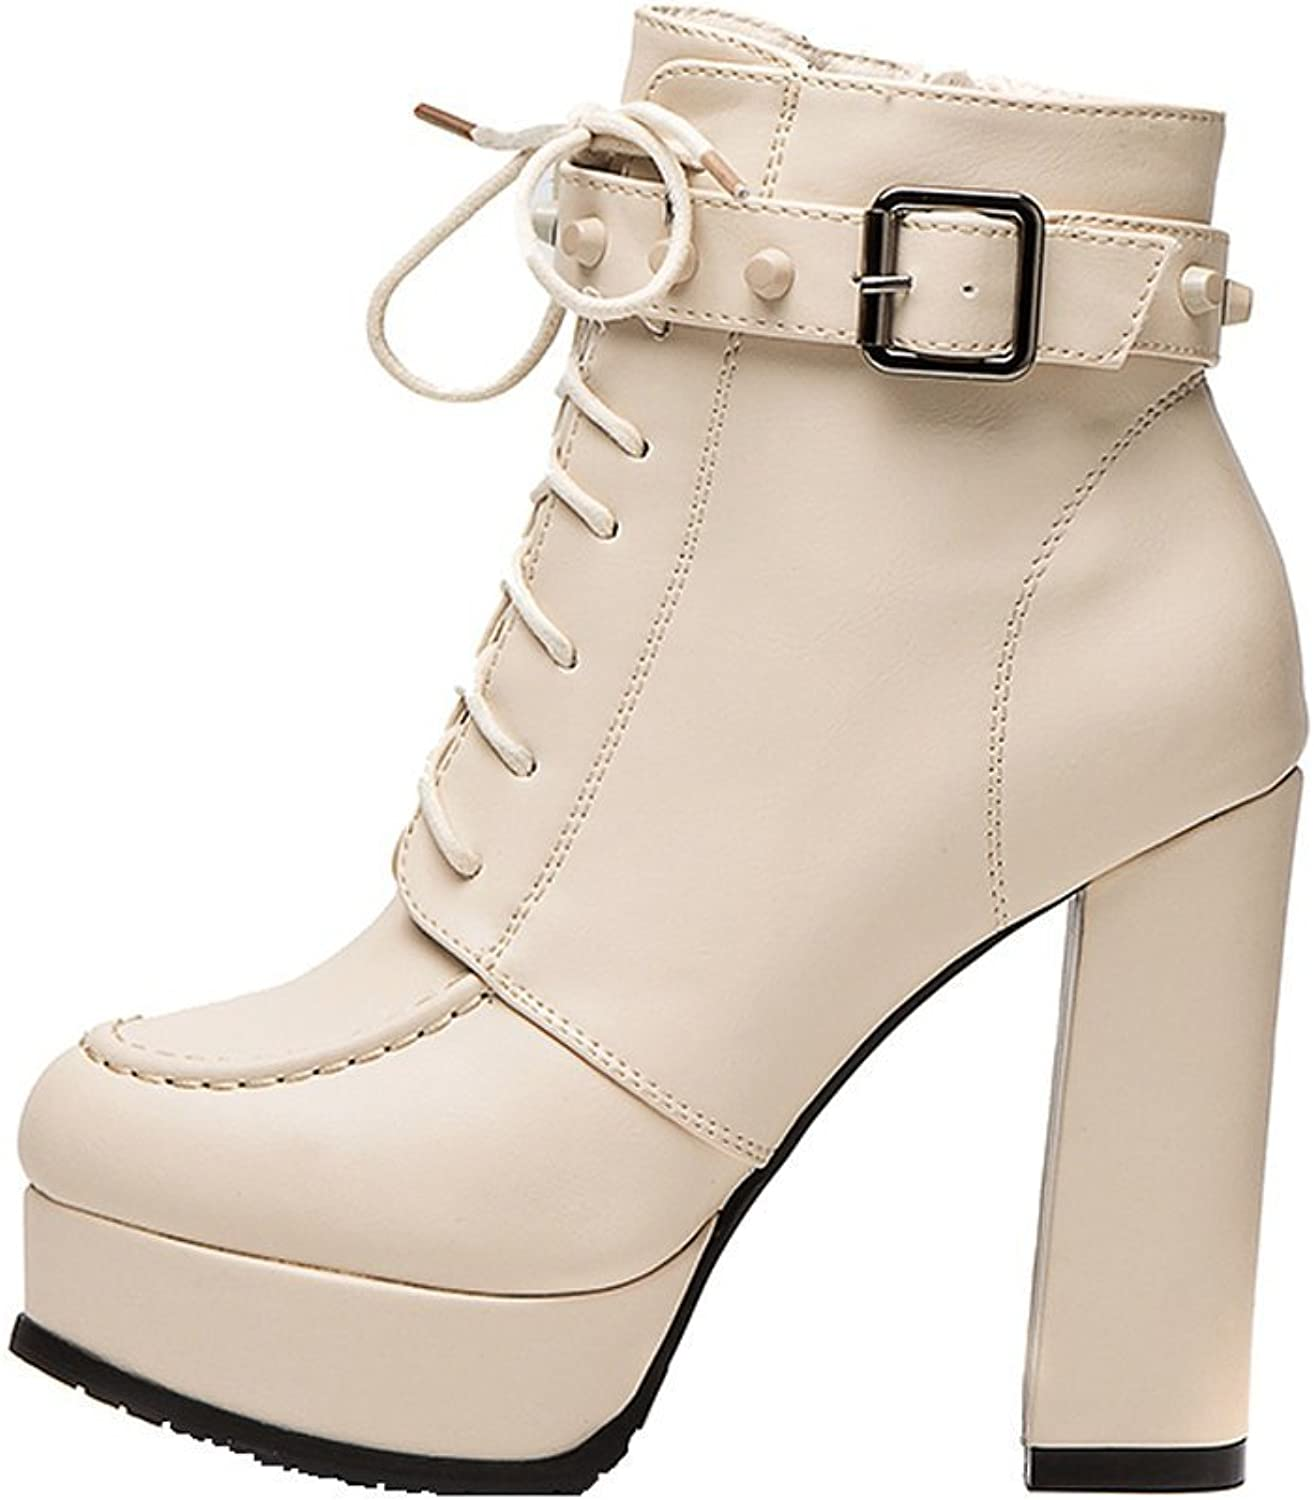 Sothingoodly Pretty Women's Fashion Chunky Heels Lace-up Booties